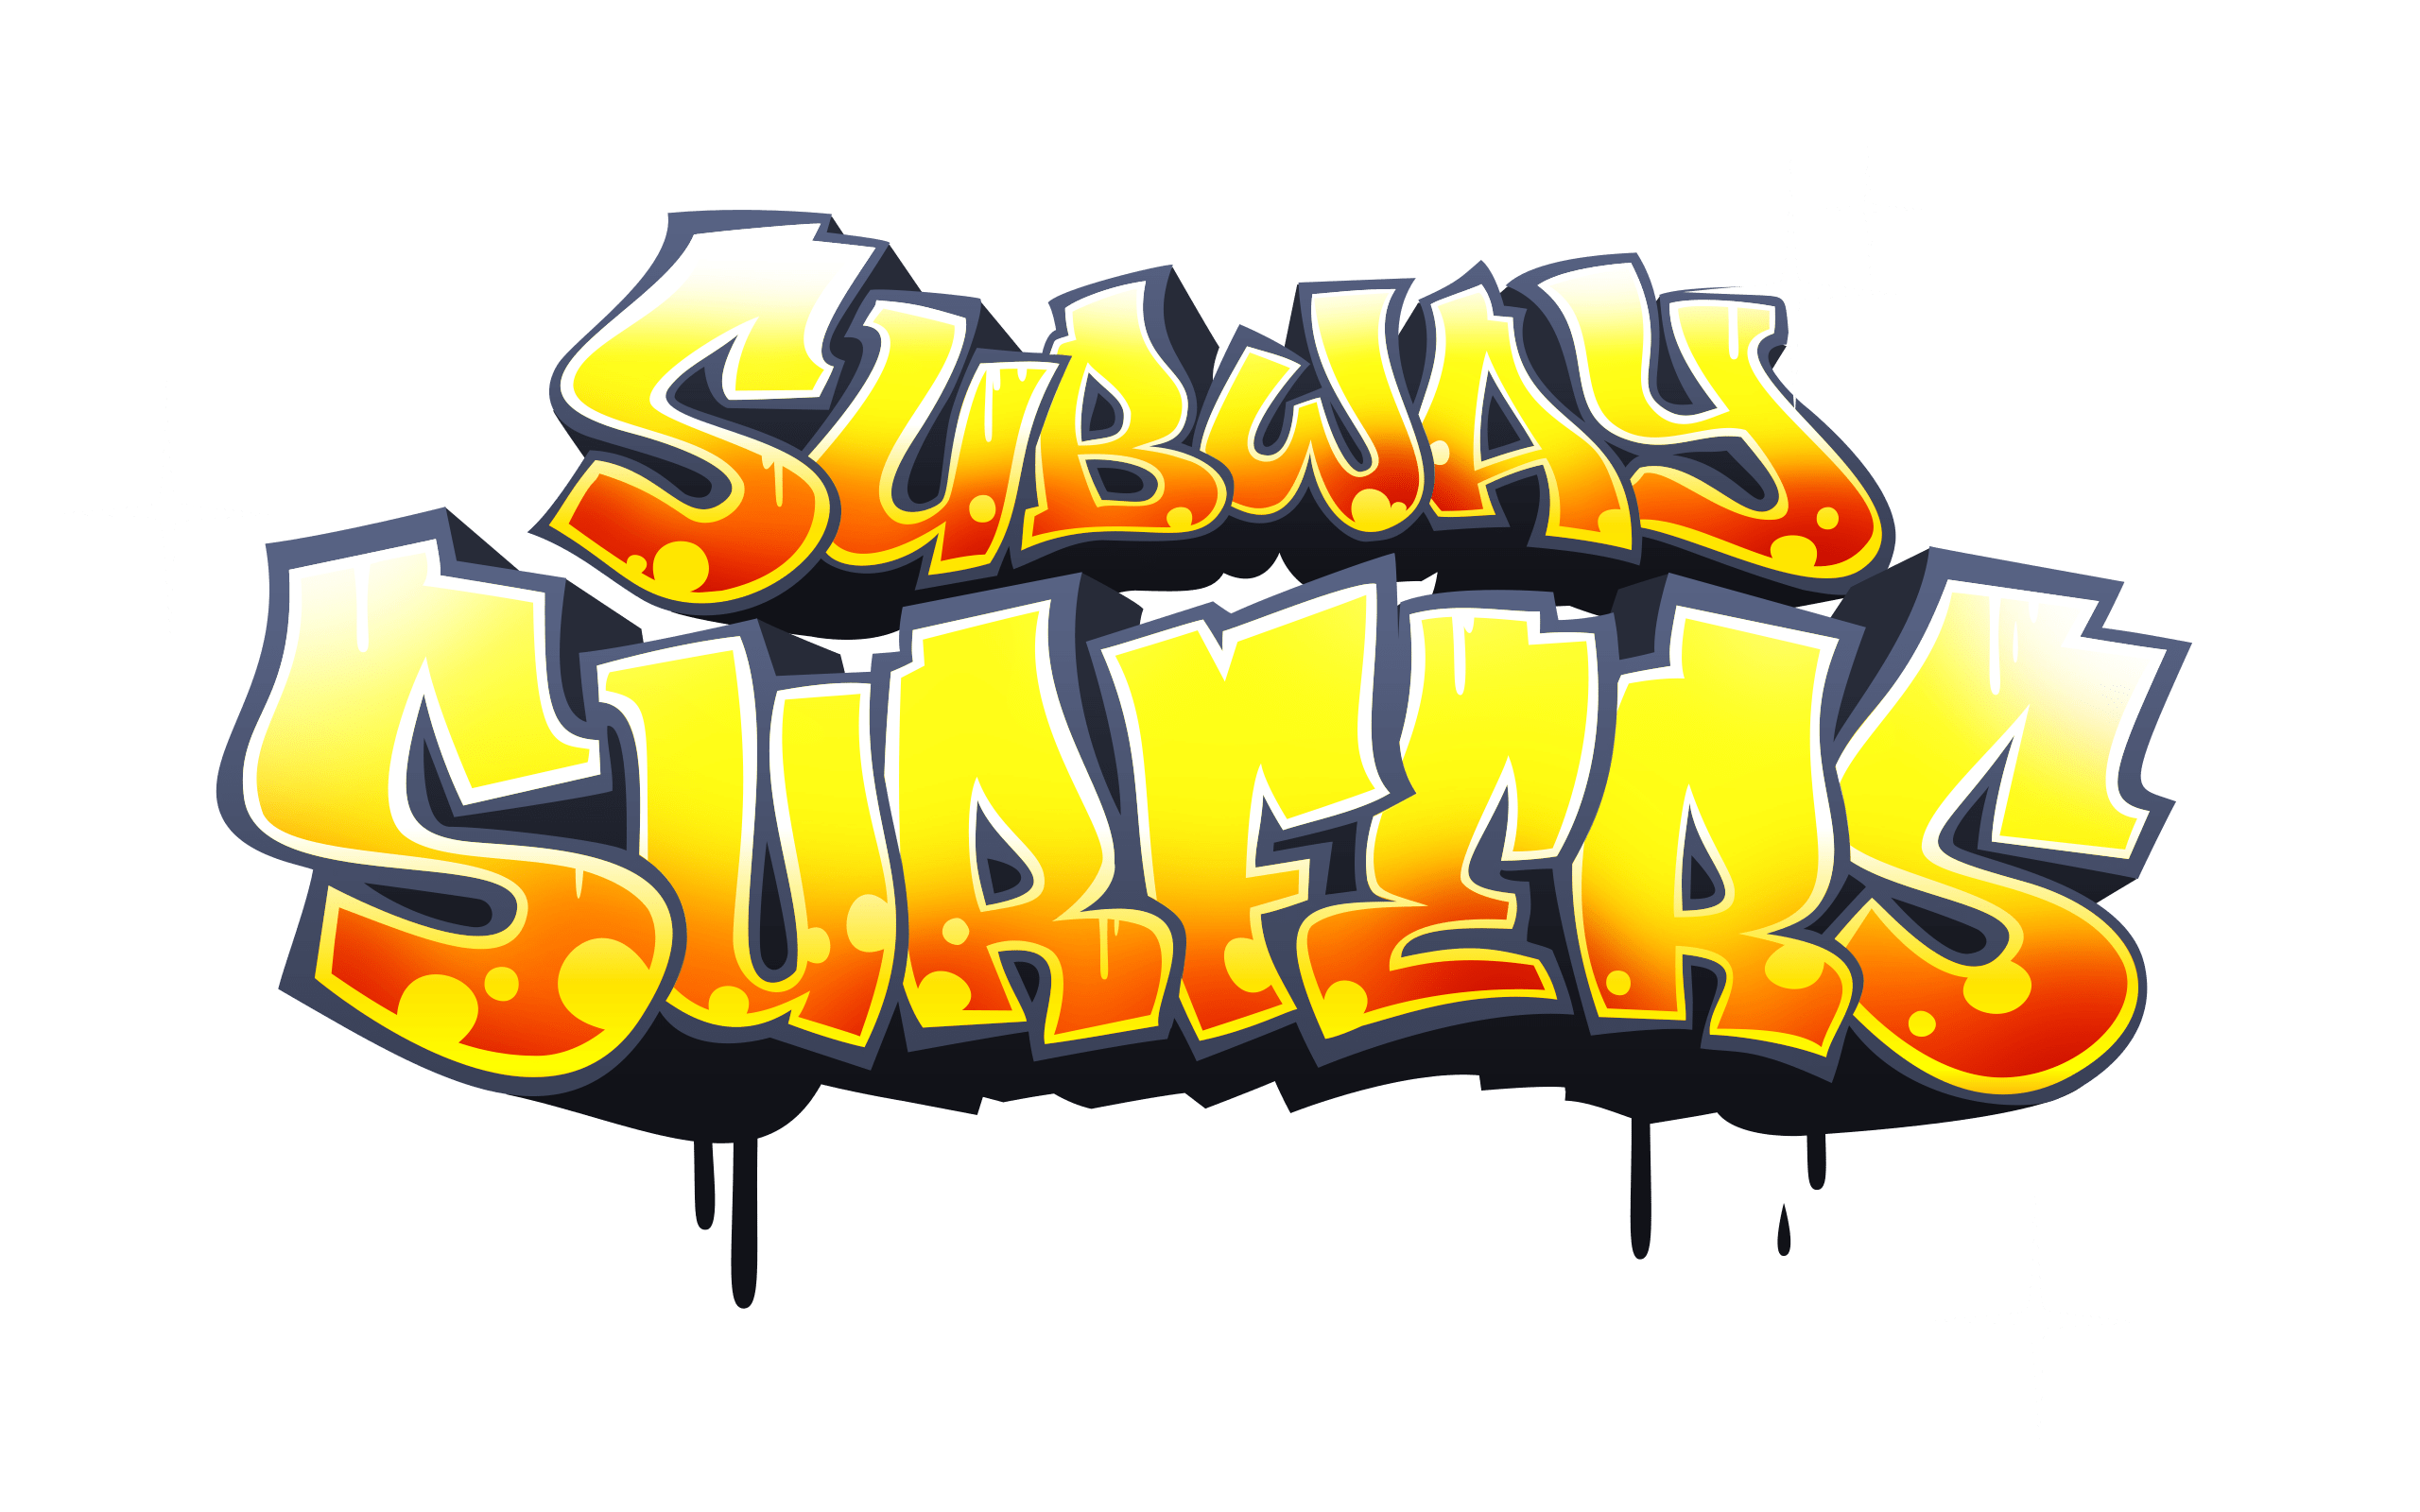 graphic download Subway clipart logo. Surfers transparent png stickpng